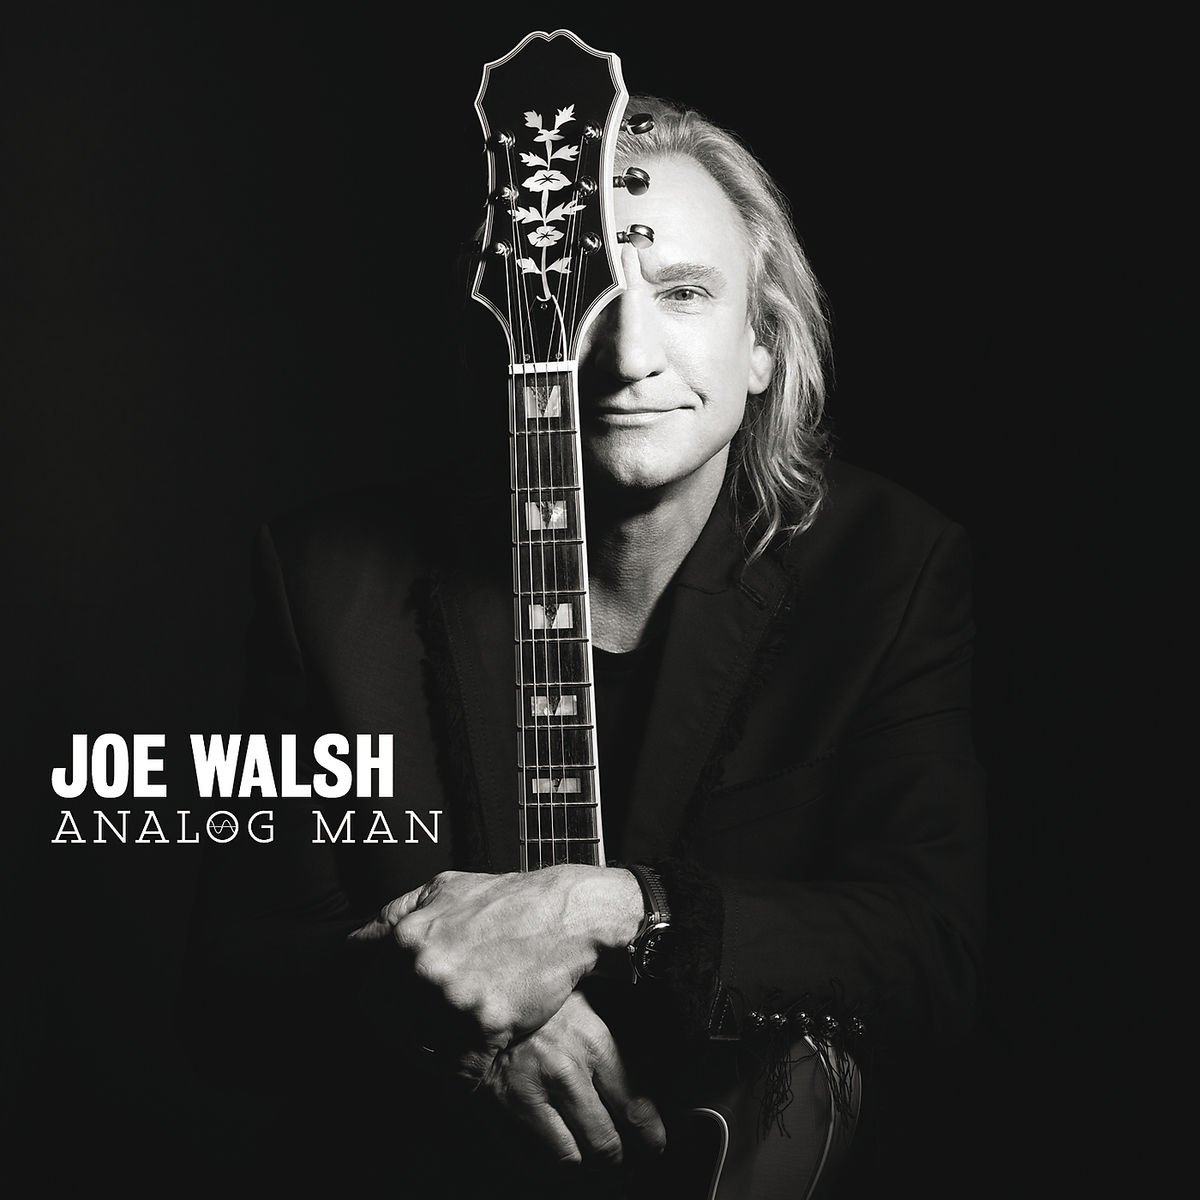 Joe Walsh Analog Man Amazon Com Music You know, there's a philosopher who says, as. analog man